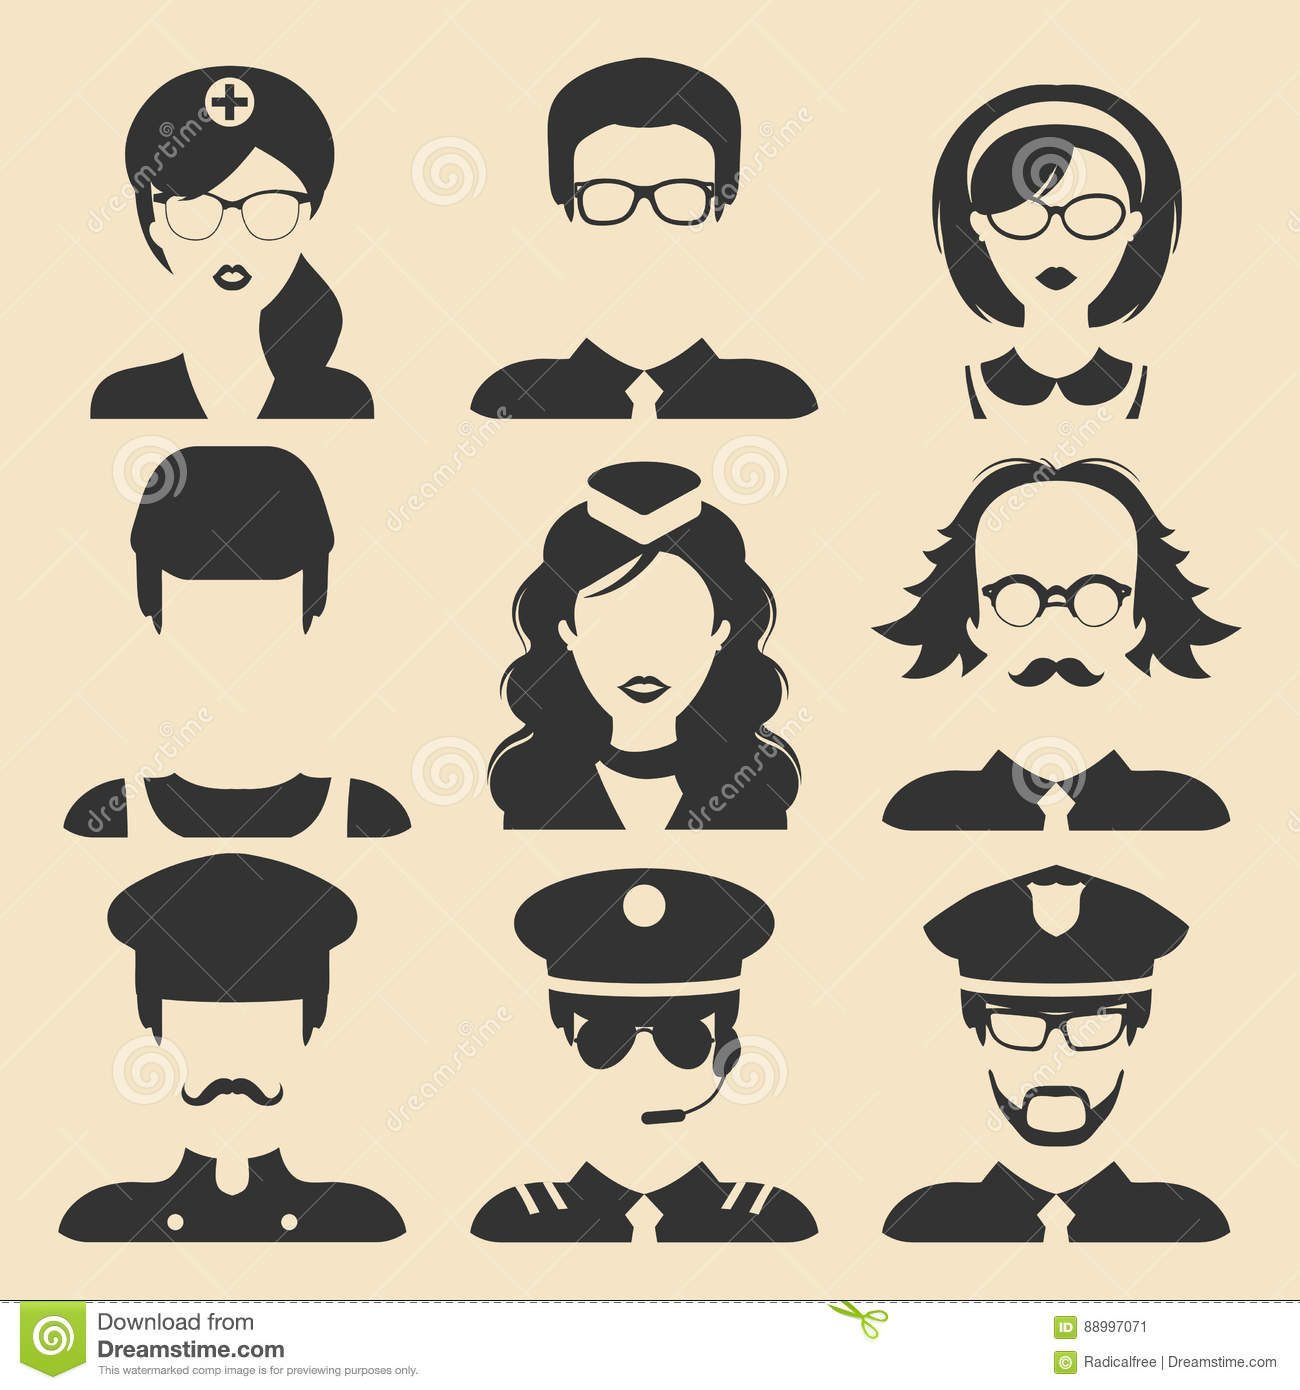 Professor And Policeman >> Vector Set Of Different Professions Male And Female Icons In Flat Style. People Faces Or Heads ...